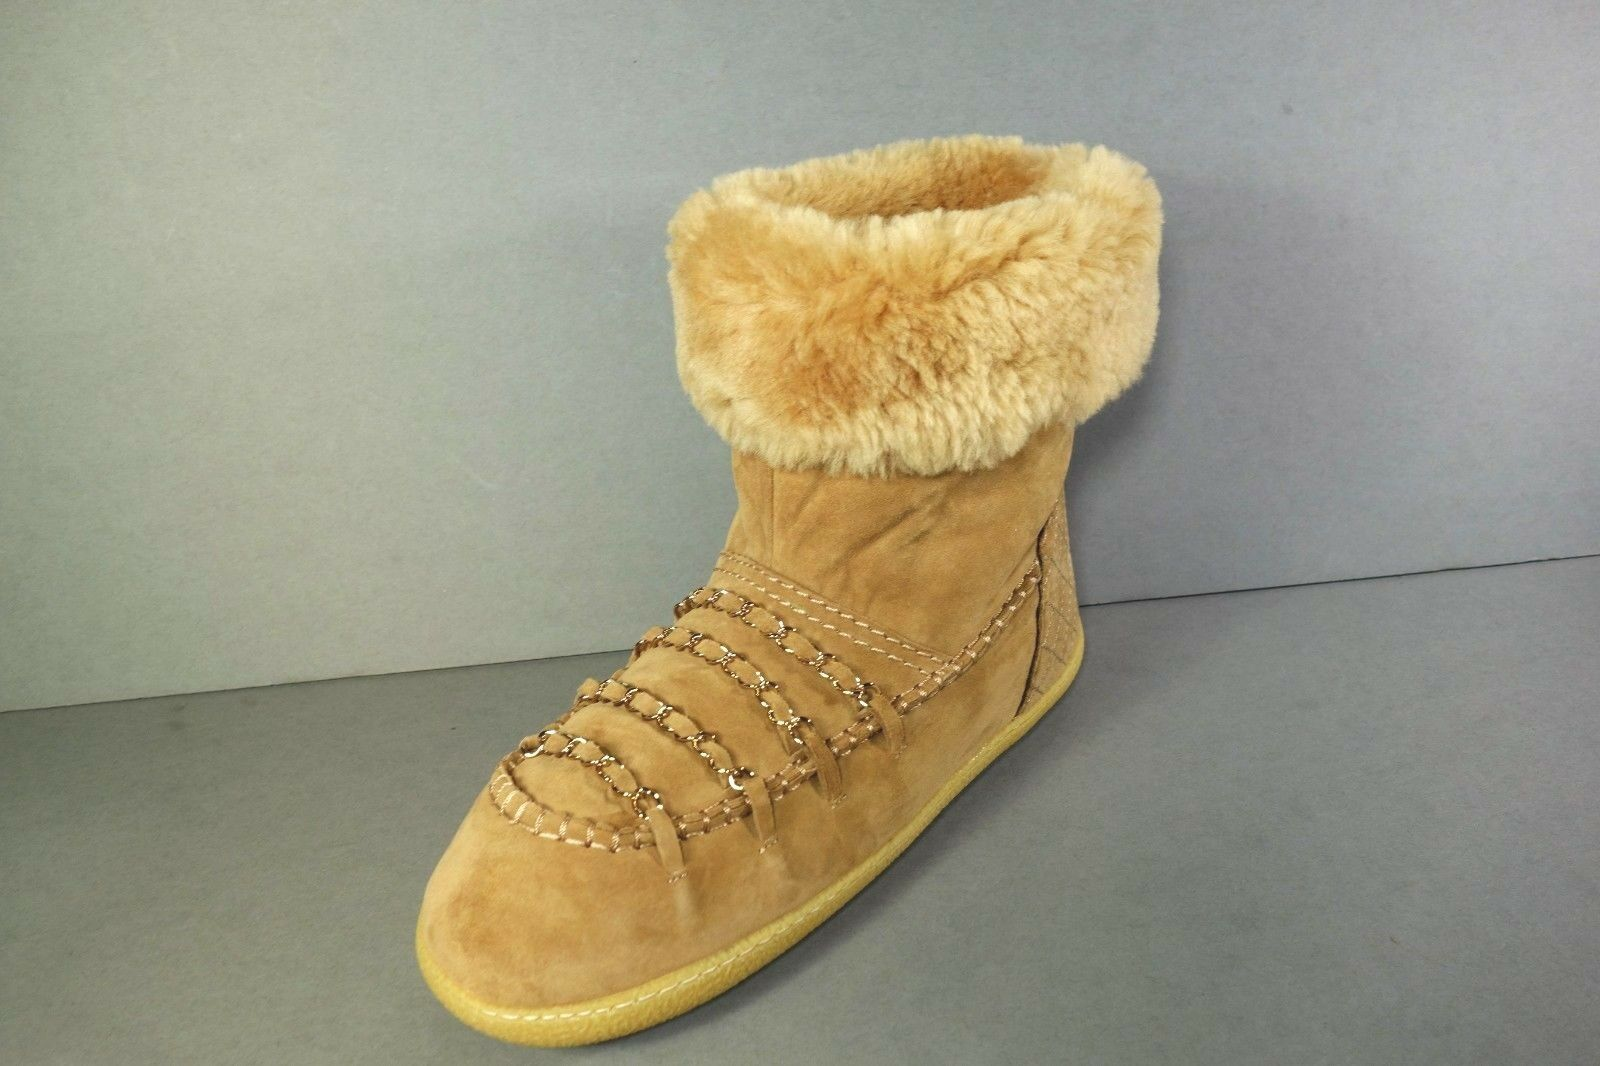 f88b1ae82507b CHANEL 39 Dark Beige Shearling Gold Woven Chains Short BOOTS Ankle ...